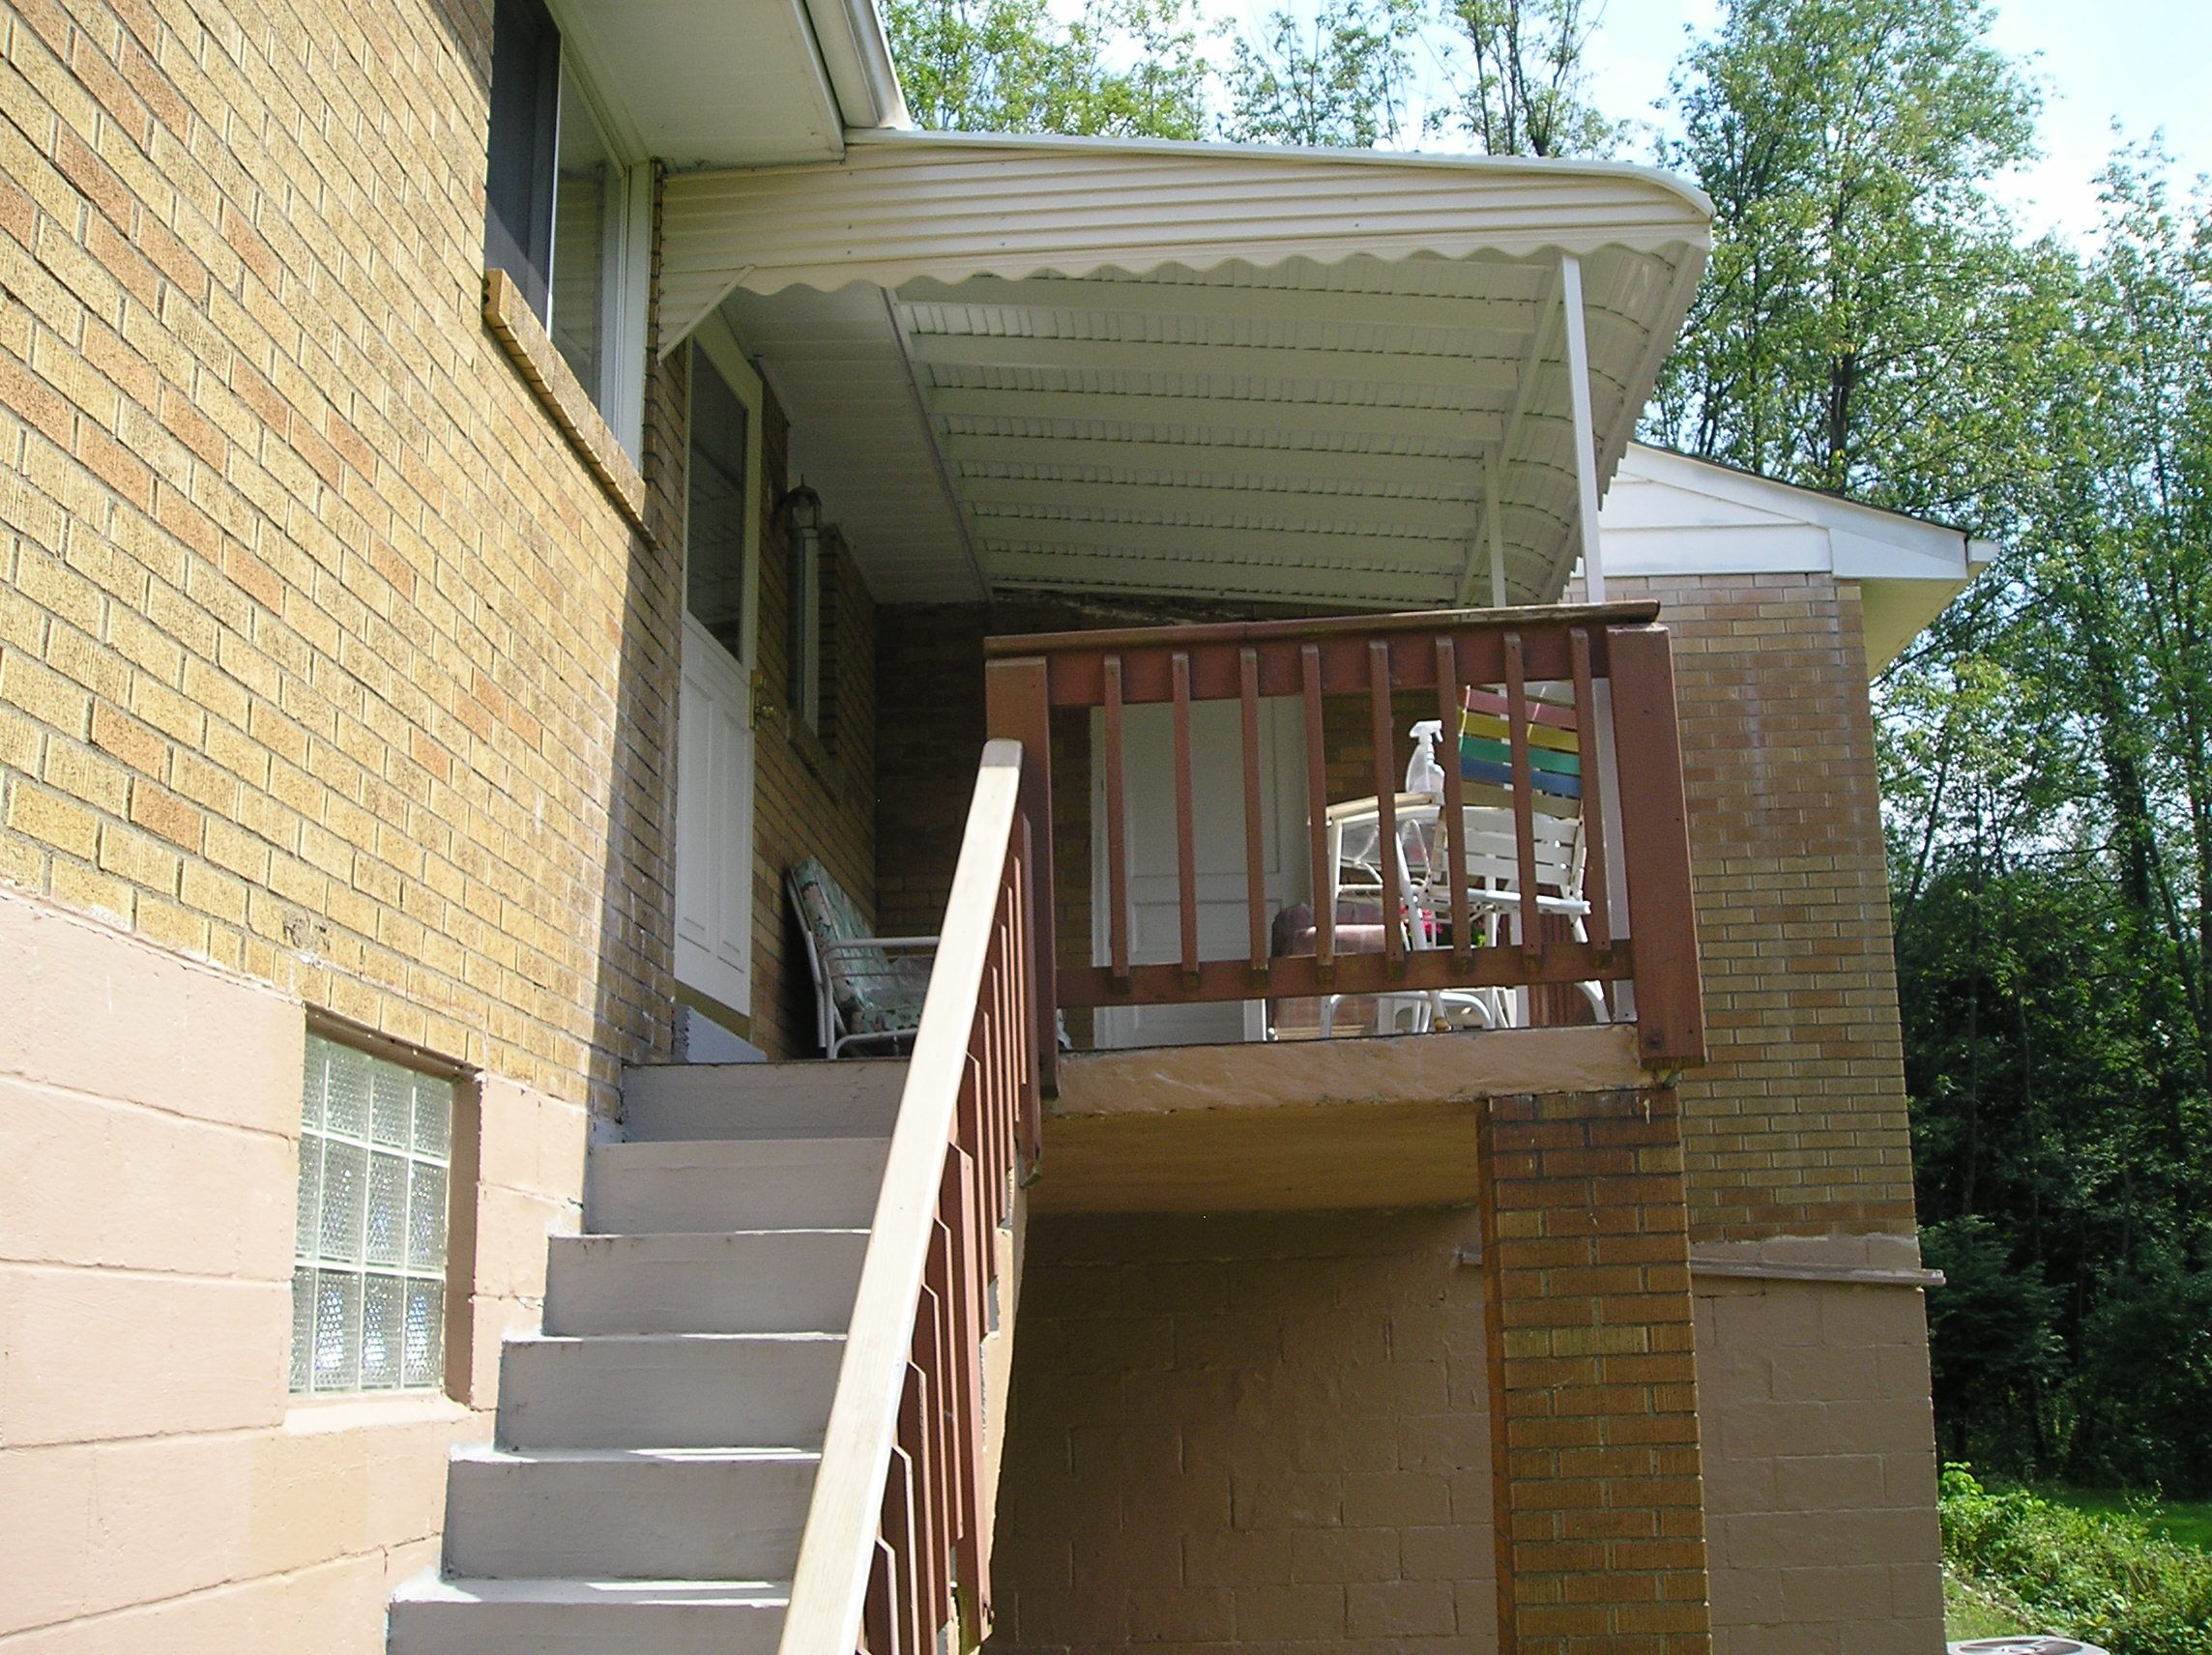 Step Down Aluminum Awnings Aluminum Awnings Aluminum Awnings